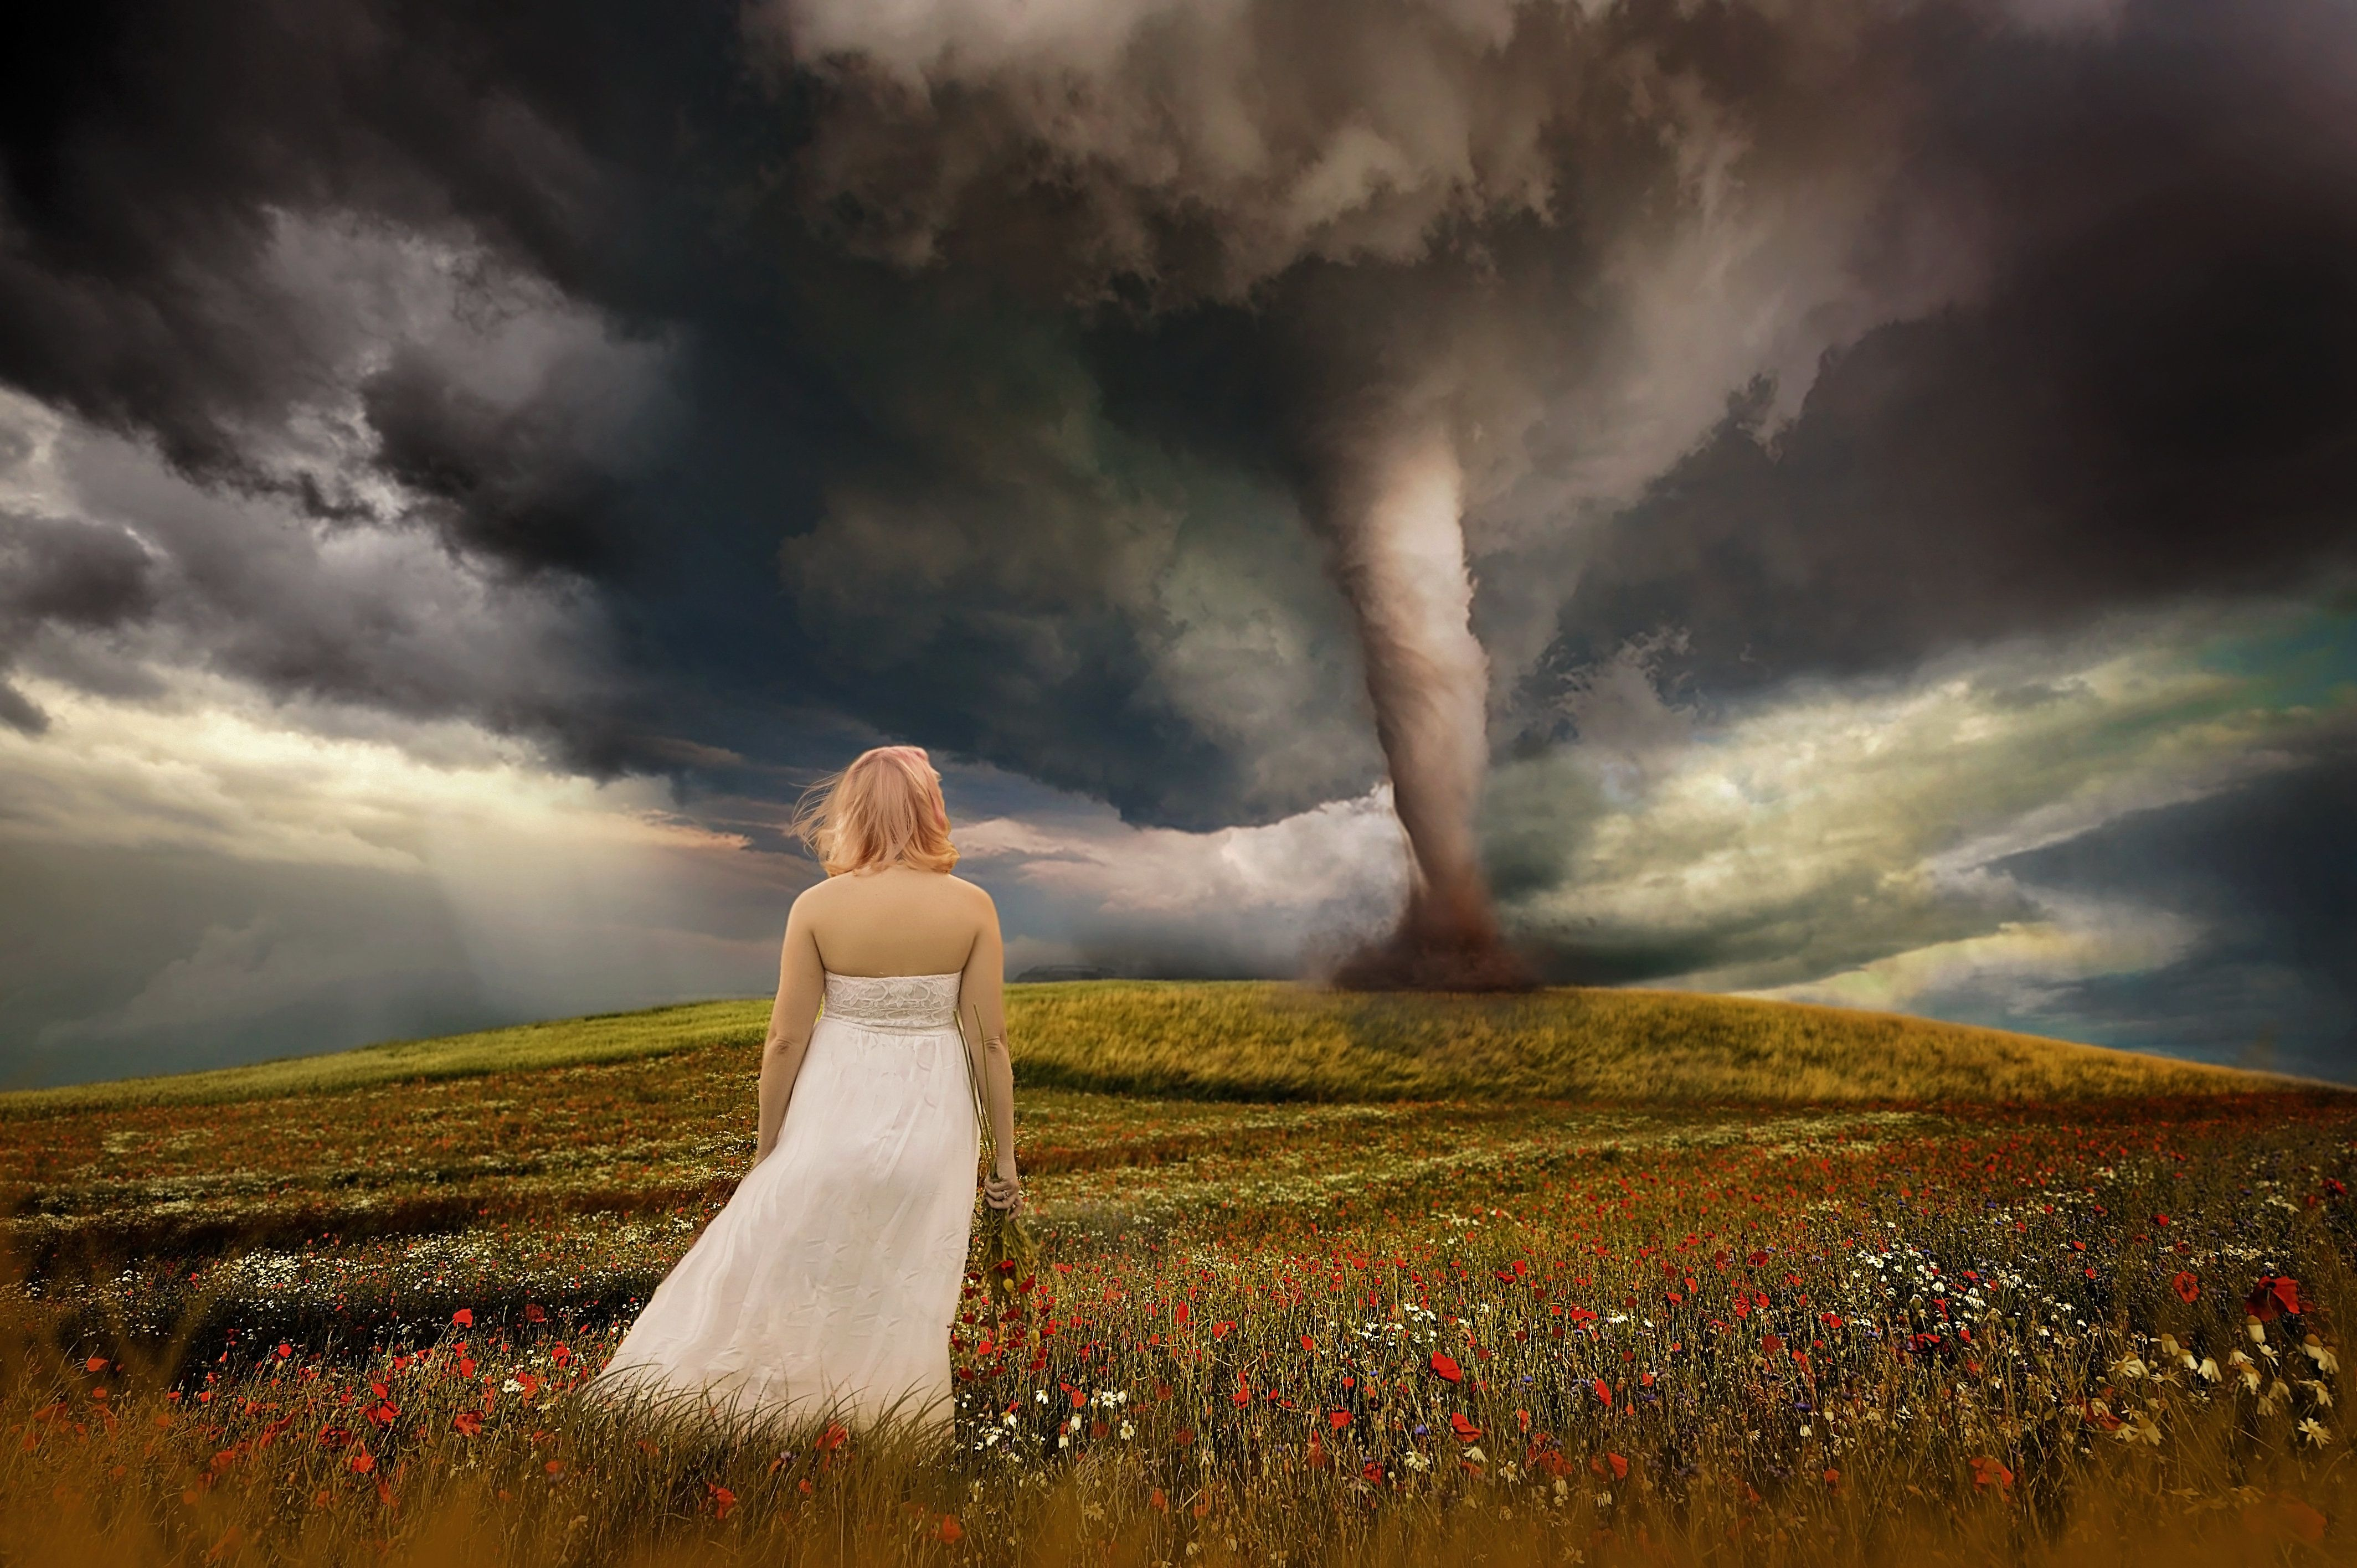 """""""The only thing that I could think of to describe all of the emotions was a tornado,"""" said the photographer."""